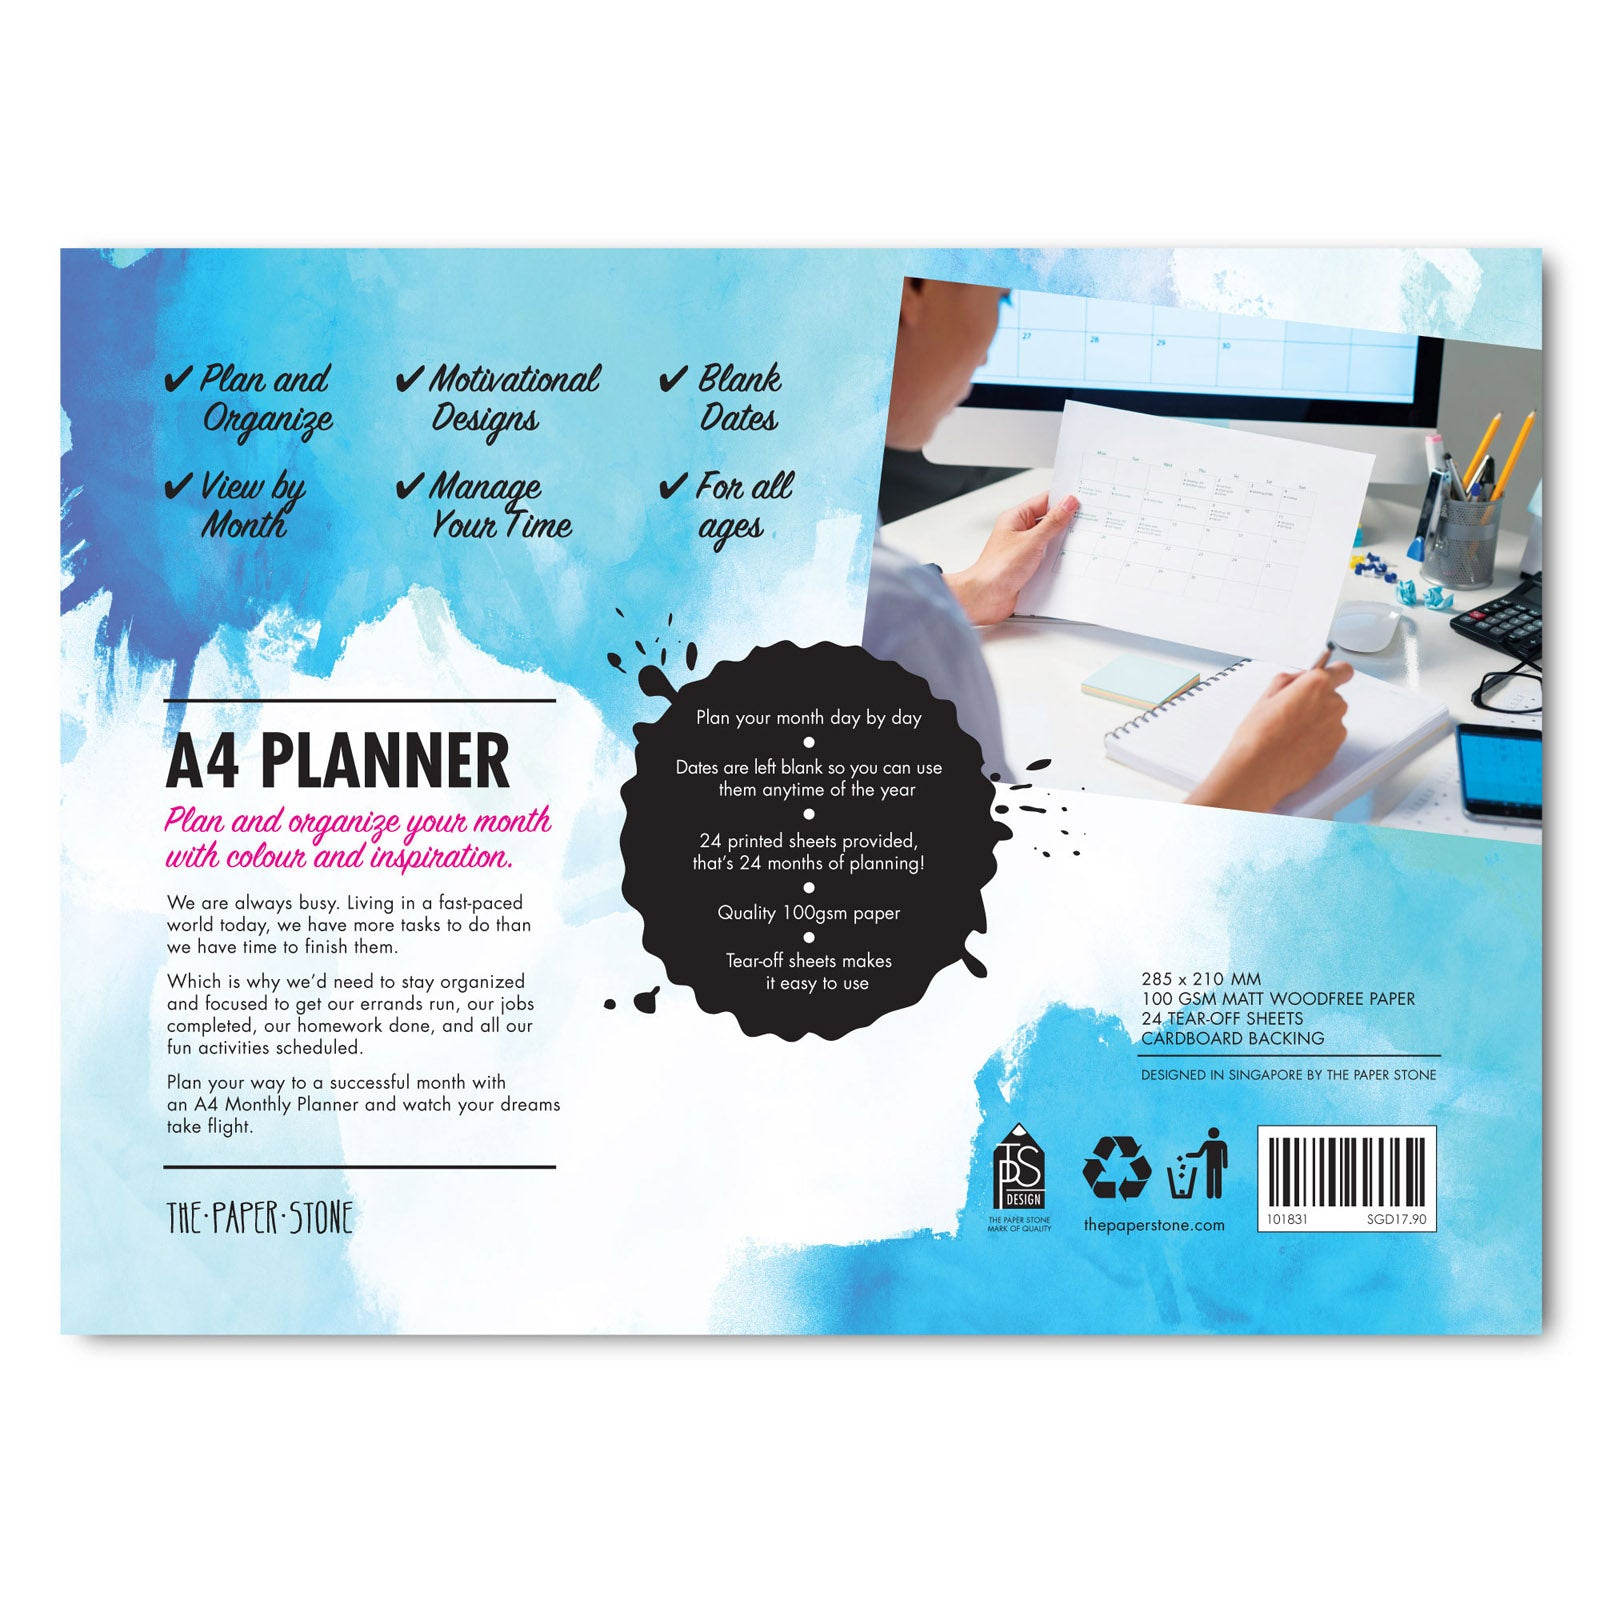 A4 Planner - Cupcakes